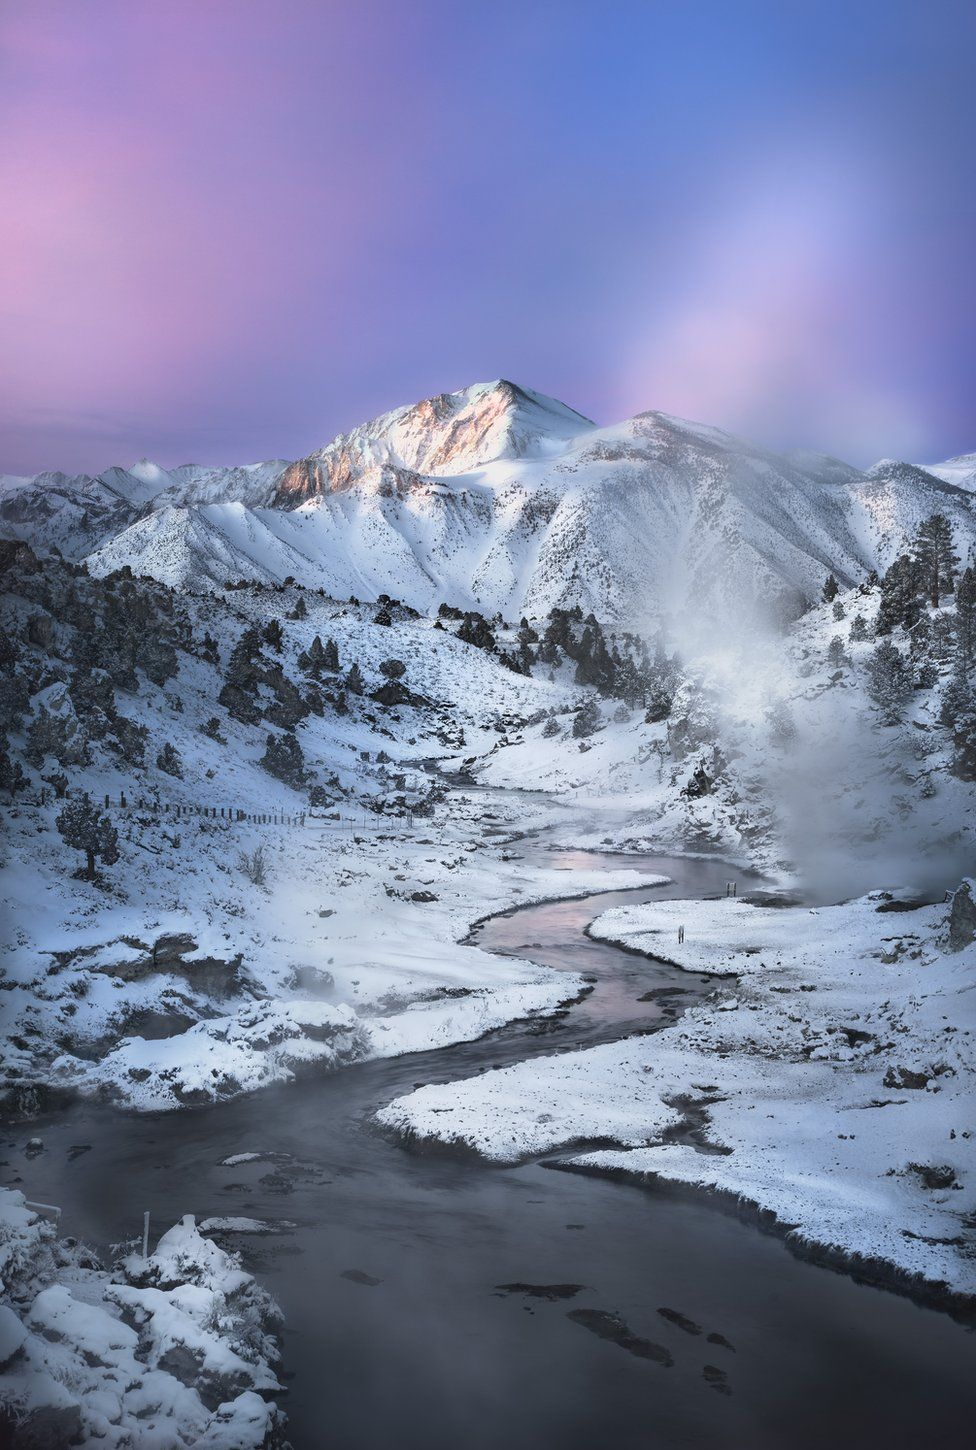 A river in front of a snow-covered mountain